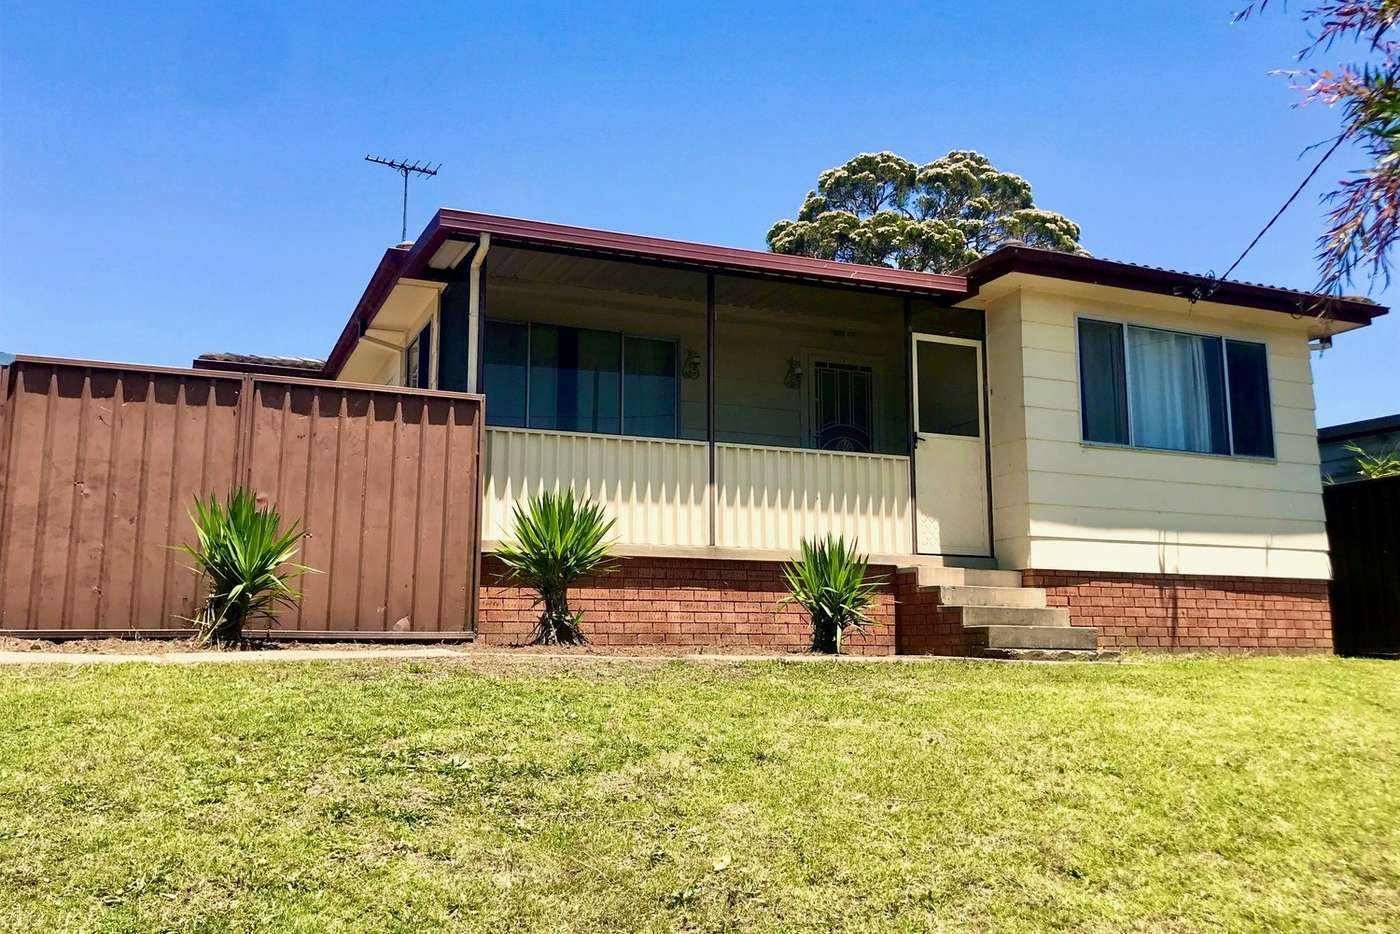 Main view of Homely house listing, 13 Valma Place, Colyton NSW 2760